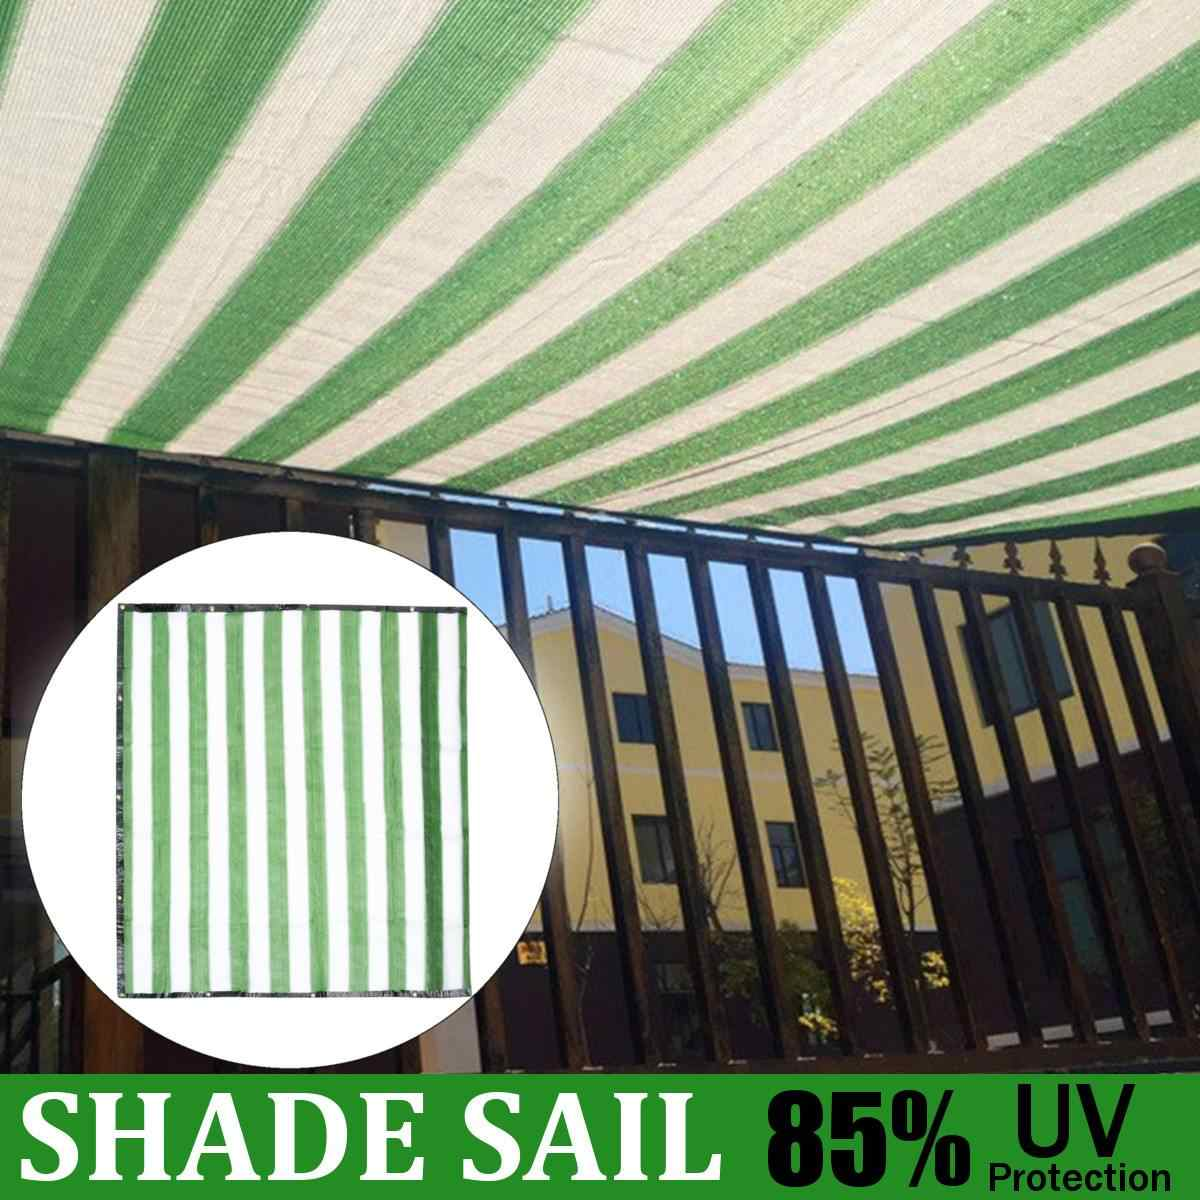 2 Size Shade Sail Net Cloth Outdoor Swimming Pool Waterproof Sun Shade Sail  Prevent UV Canopy Home Garden Awning Cover Cap